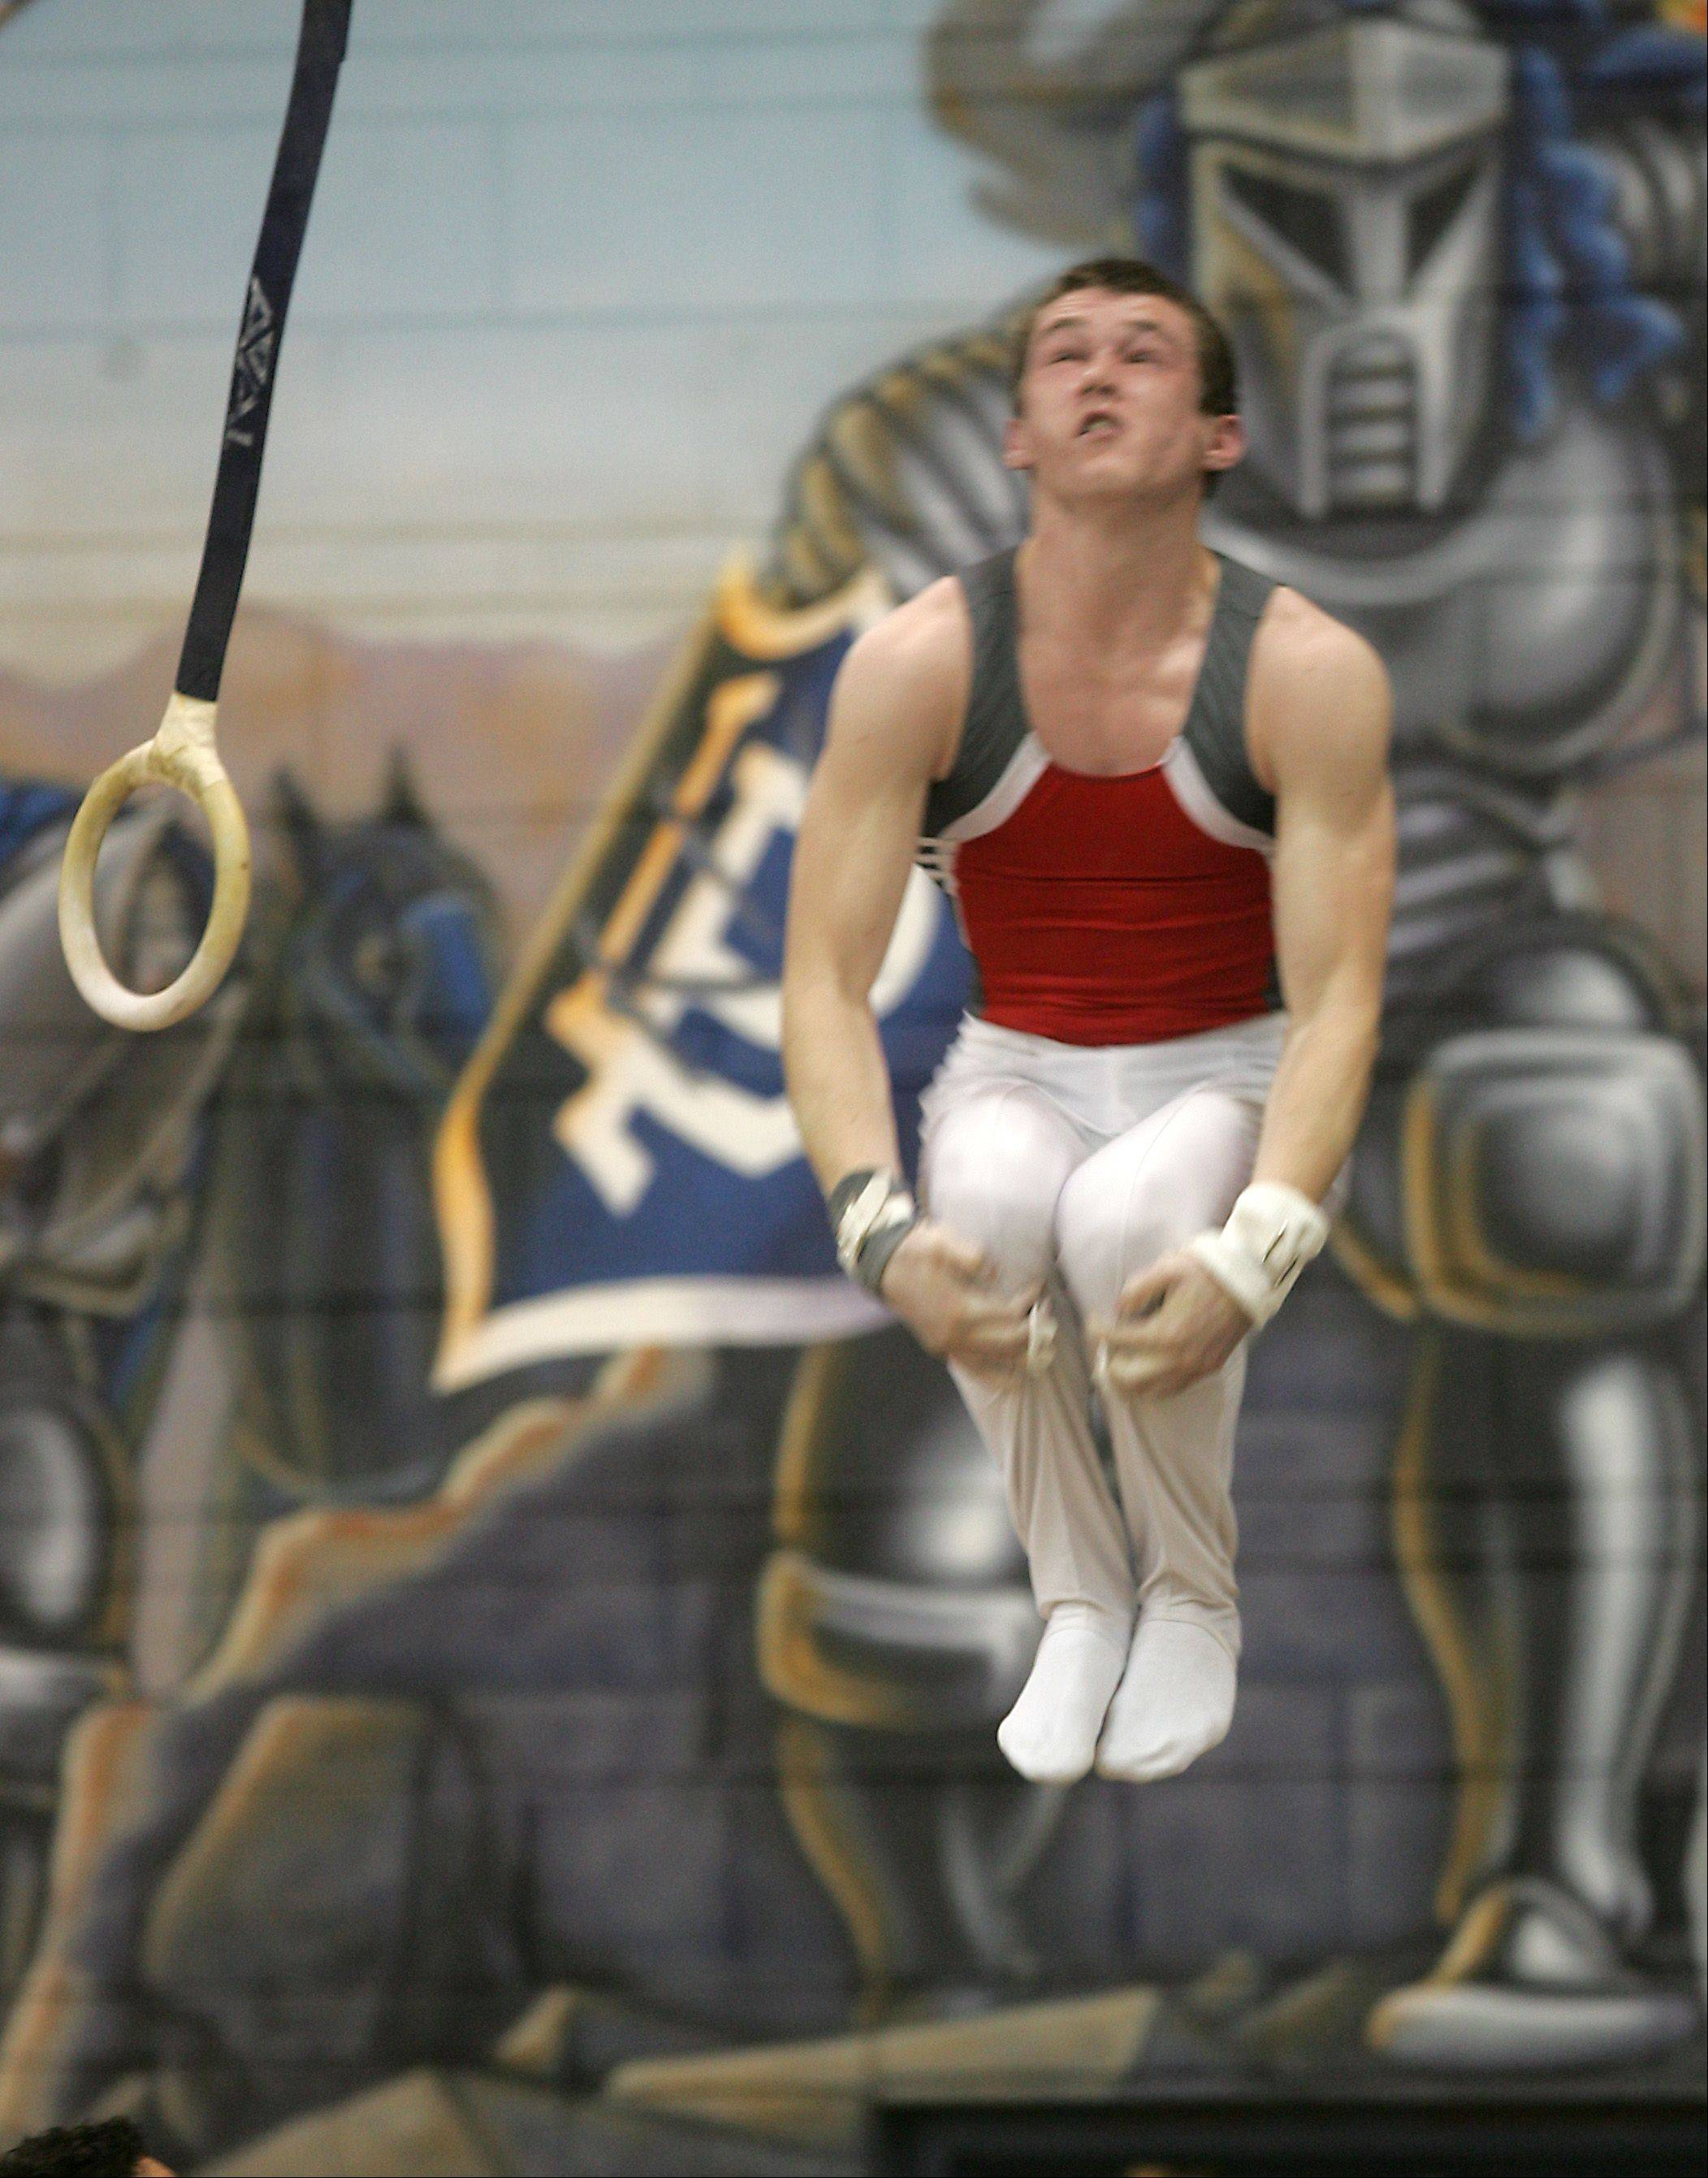 Mundelein's Cameron Mueller dismounts from his still rings routine, during the Ralph Krupke Boys Gymnastics Invitational at Lake Park East High School.